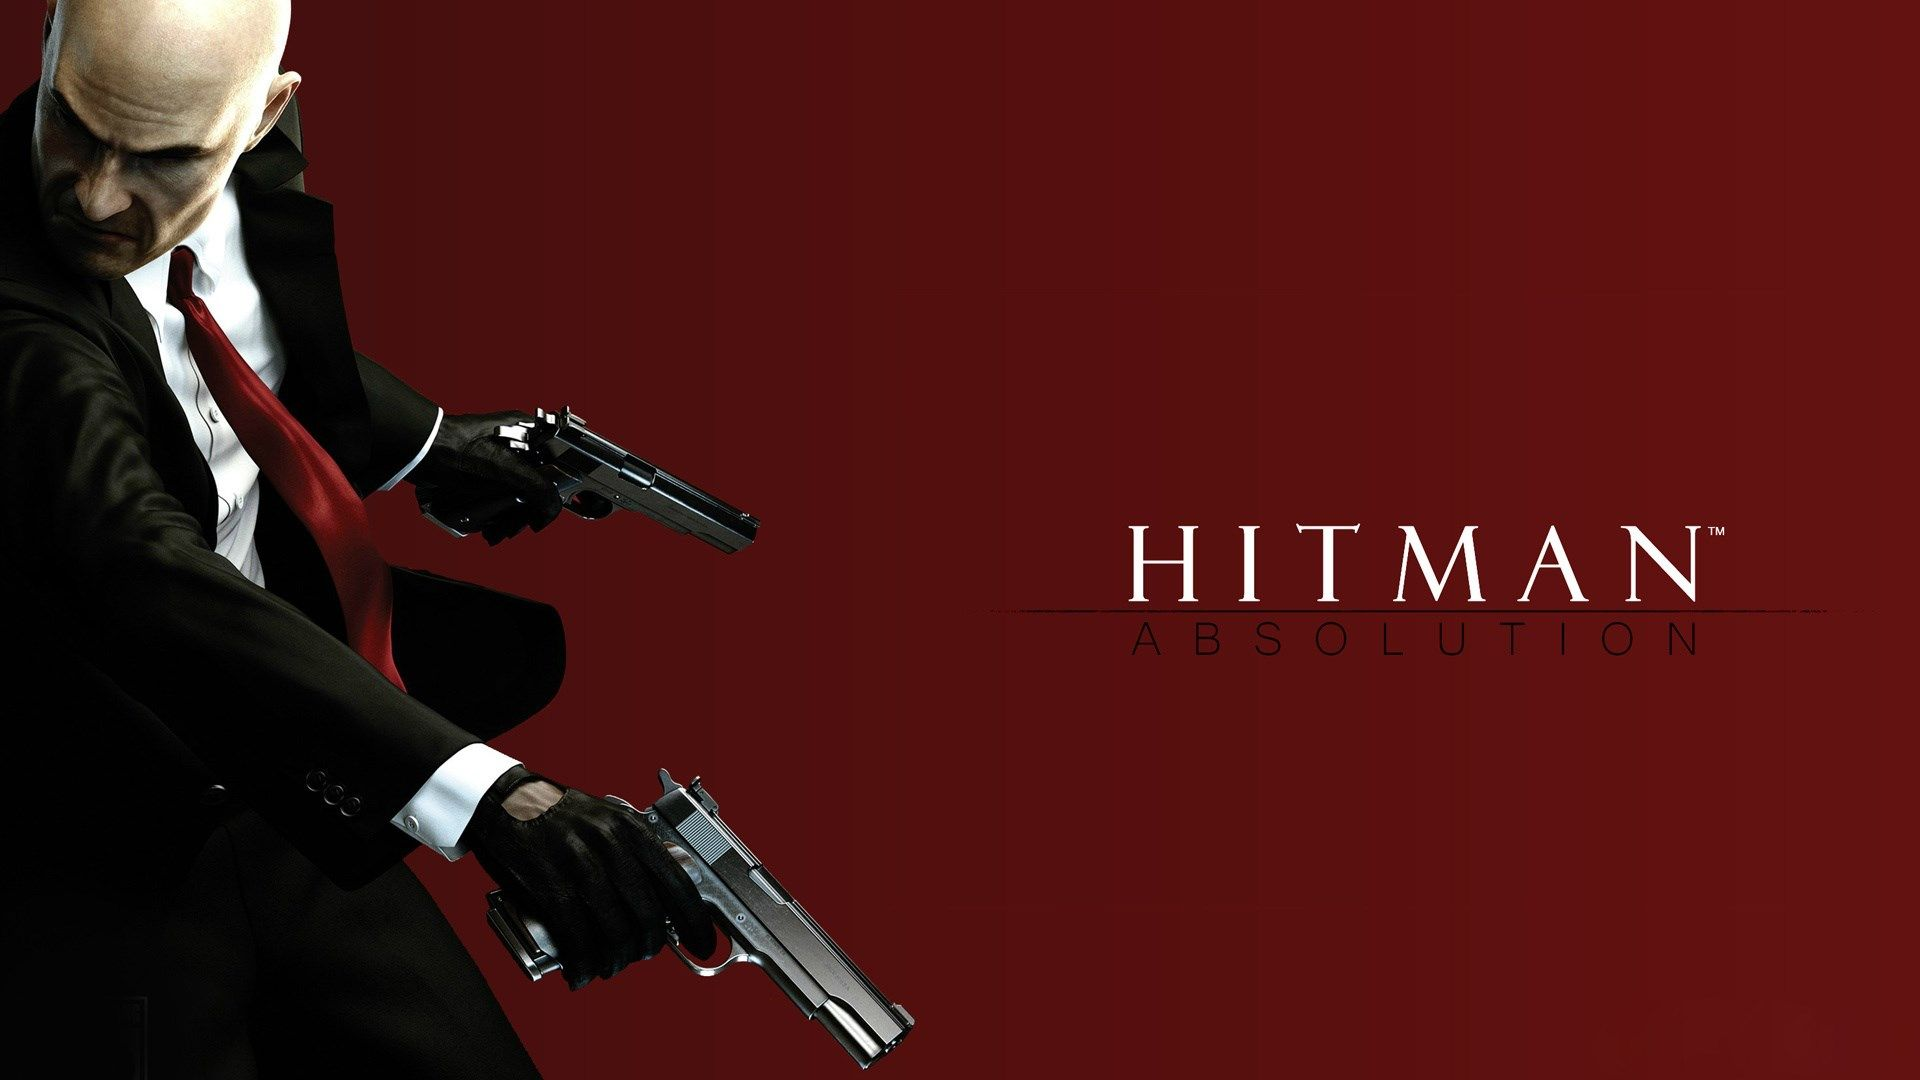 hd wallpaper hitman absolution - hitman absolution category